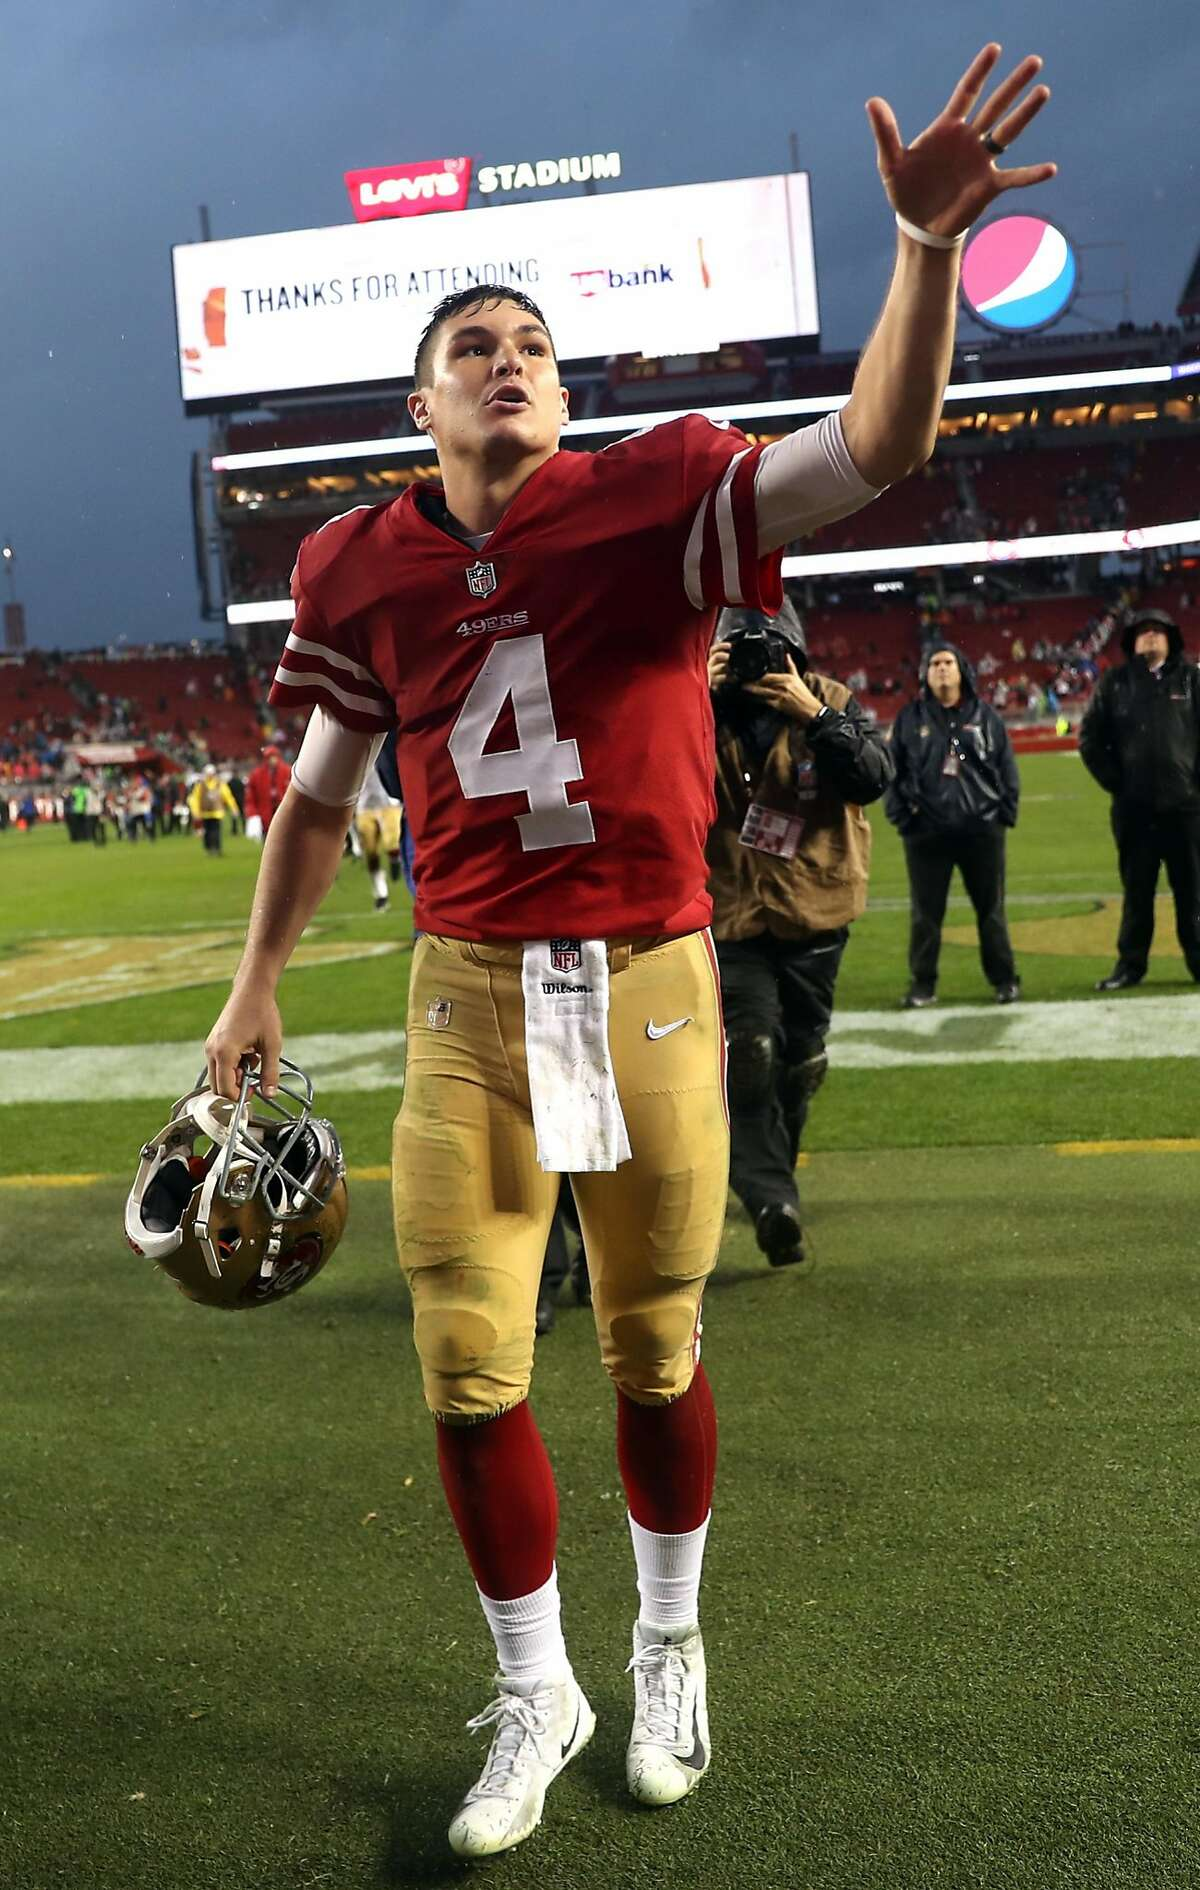 San Francisco 49ers' Nick Mullens leaves the field after Niners' 26-23 win over Seattle Seahawks in overtime in NFL game at Levi's Stadium in Santa Clara, Calif. on Sunday, December 16, 2018.